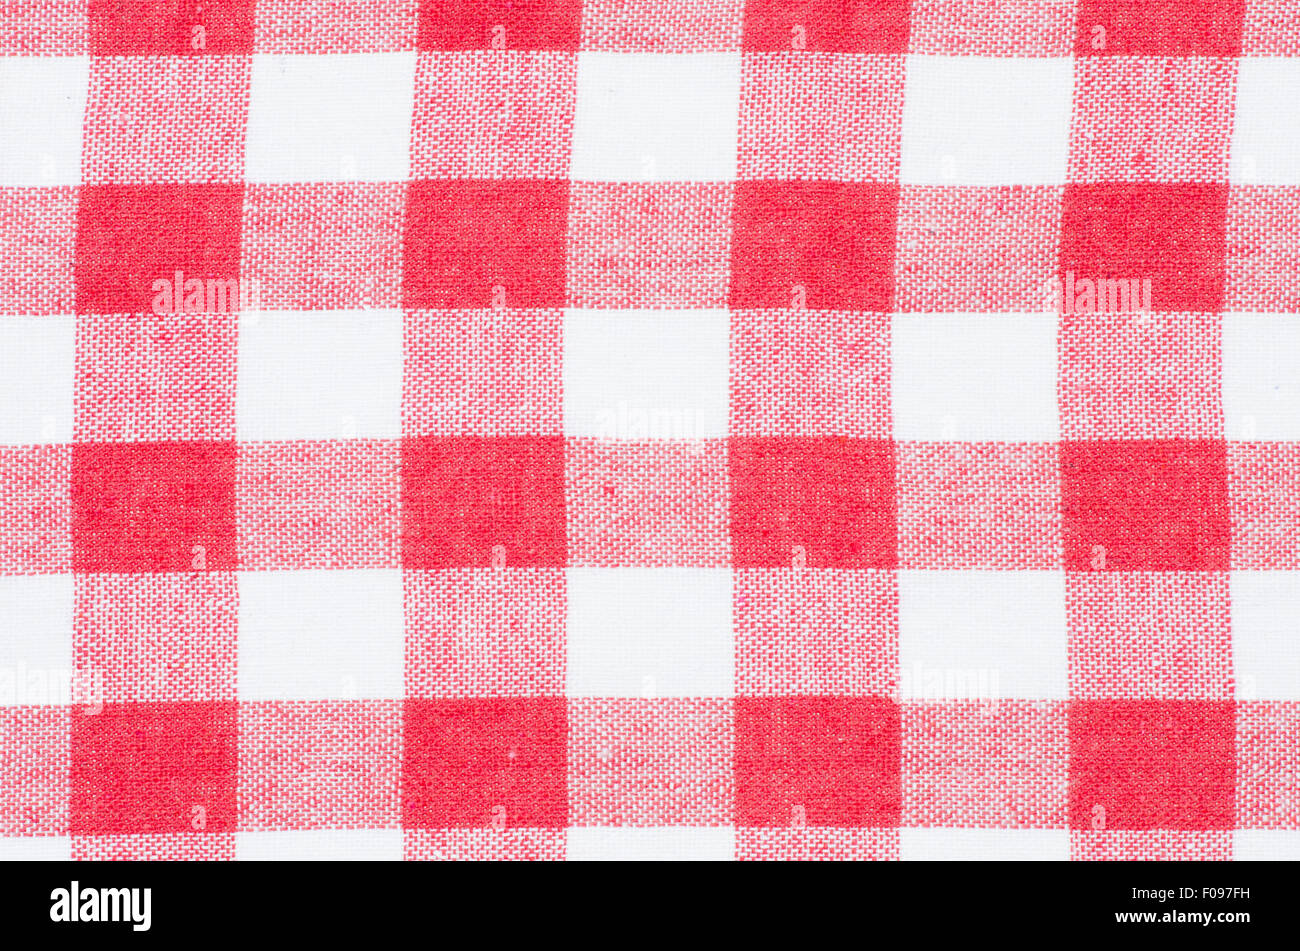 Checkered Red And White Kitchen Towel Background Texture ...